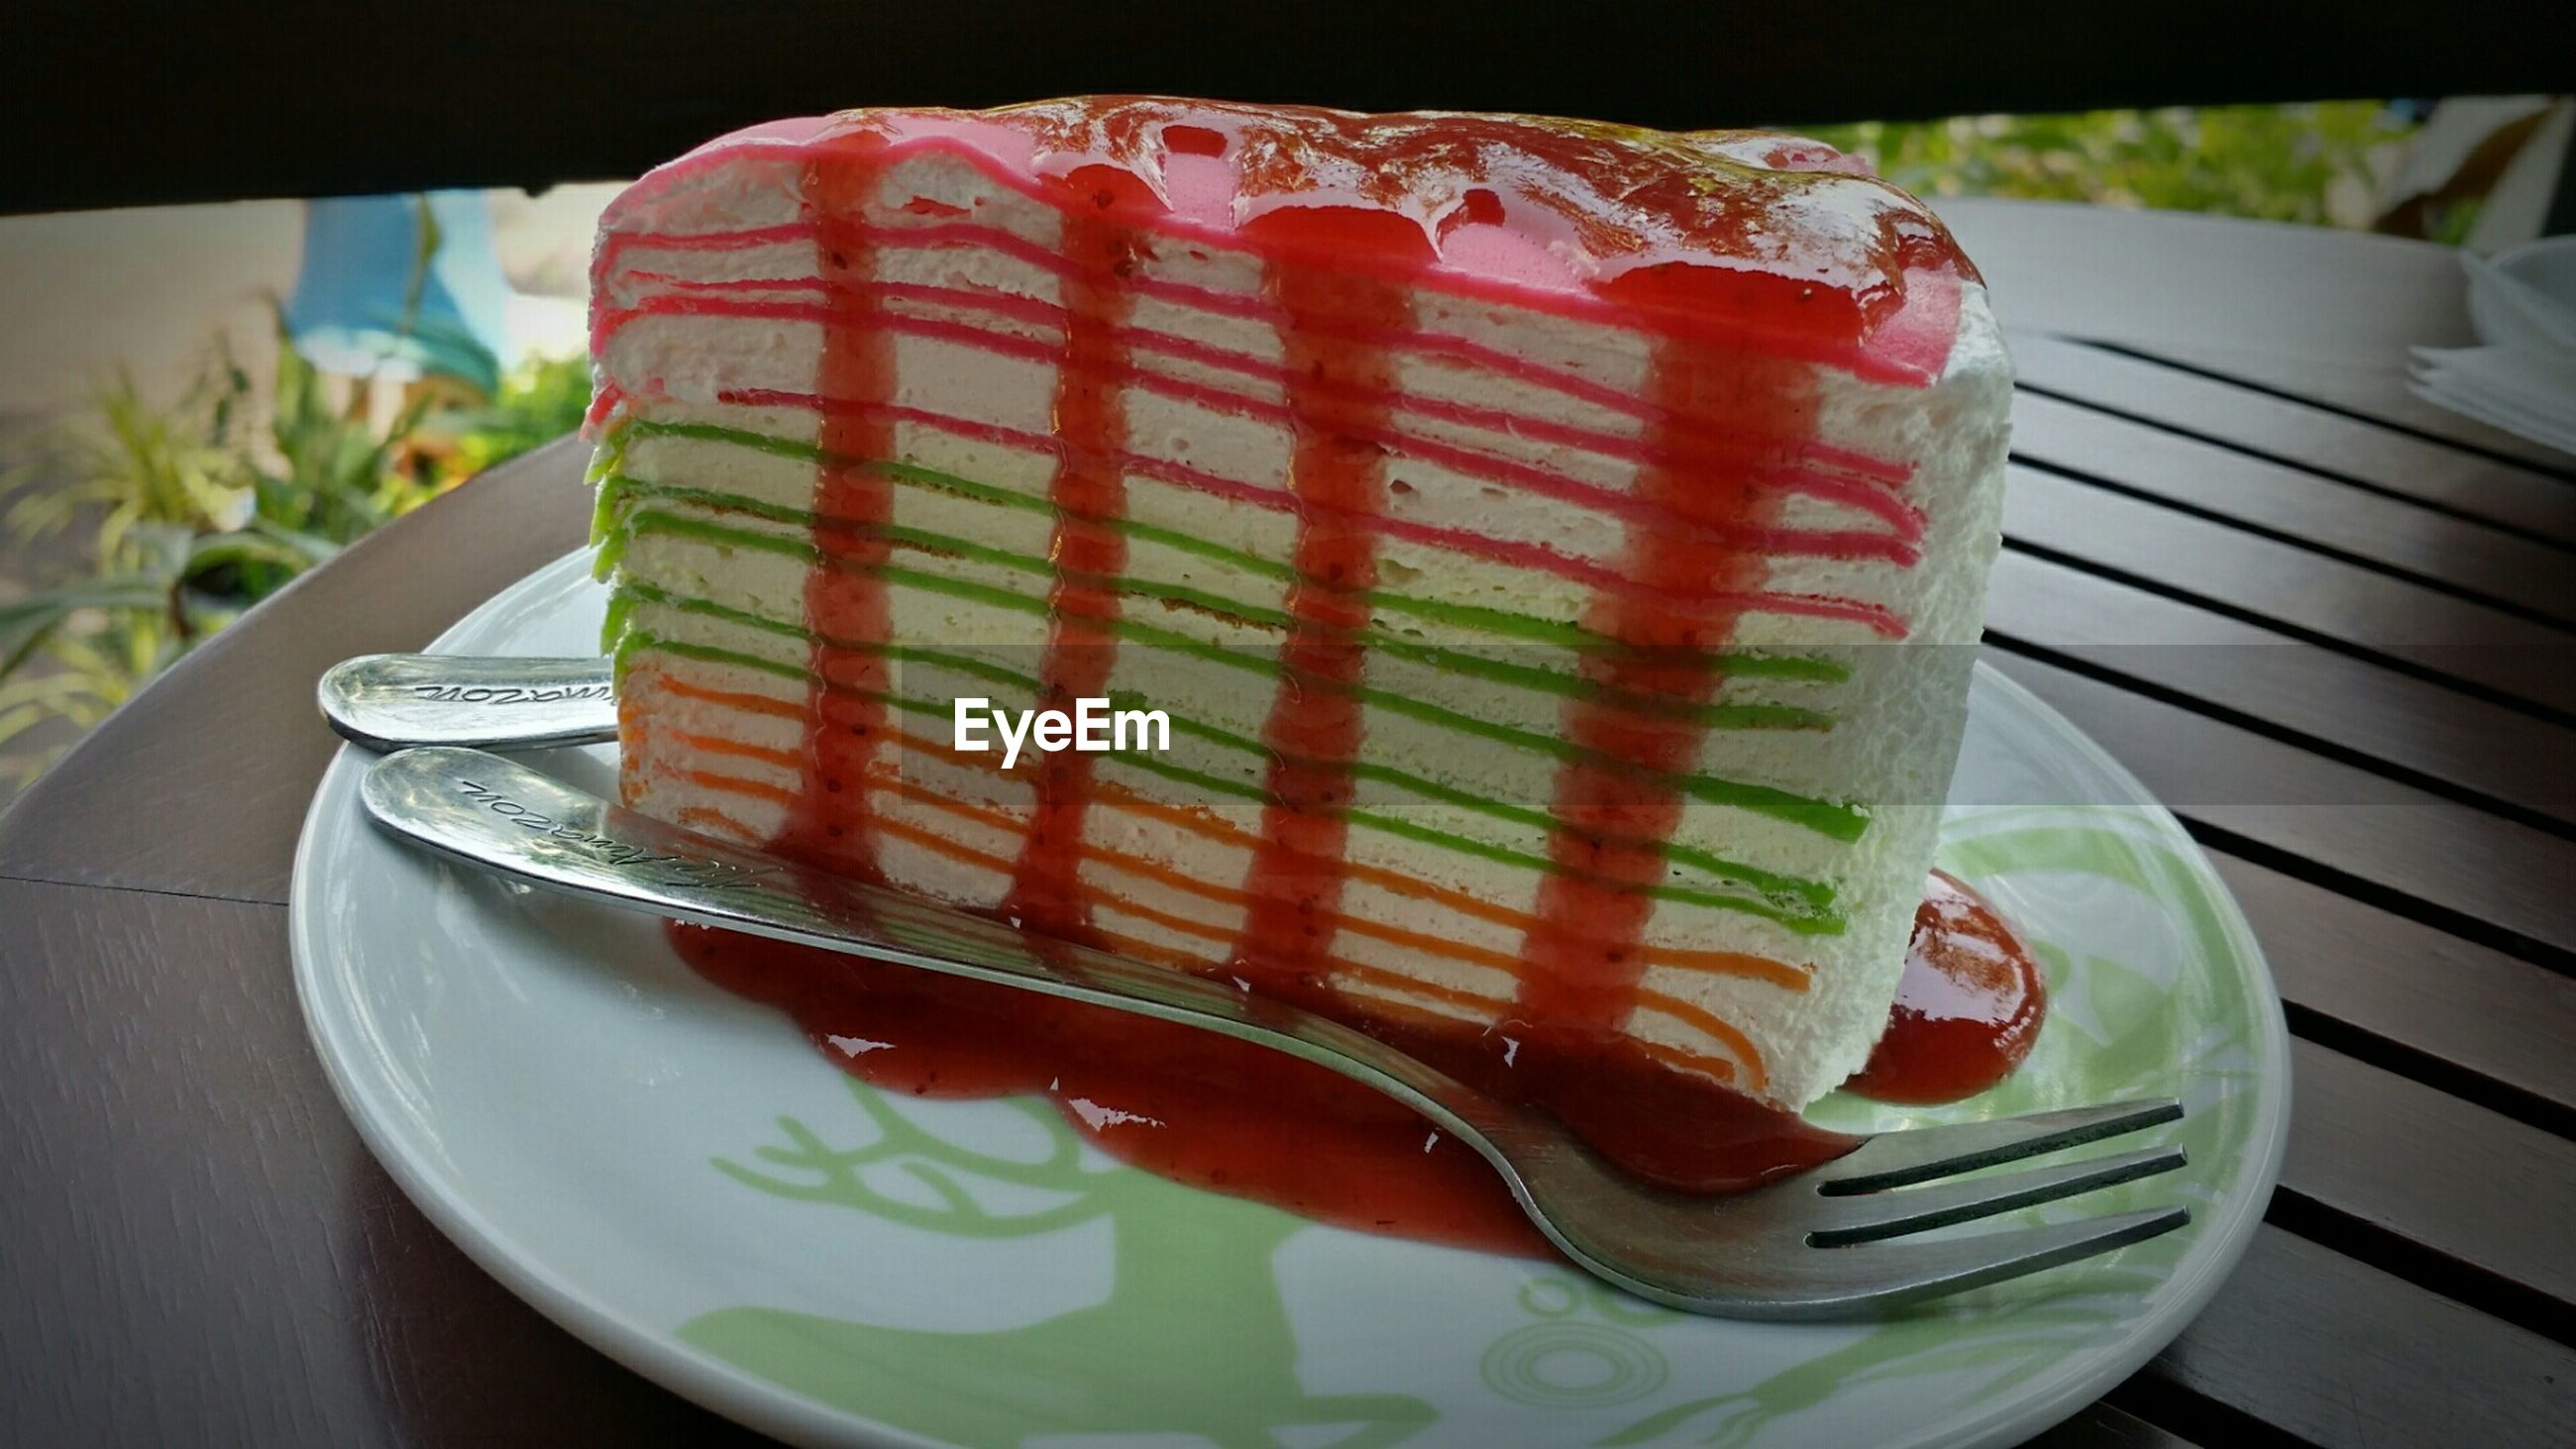 Close-up of crepe cake slice on table